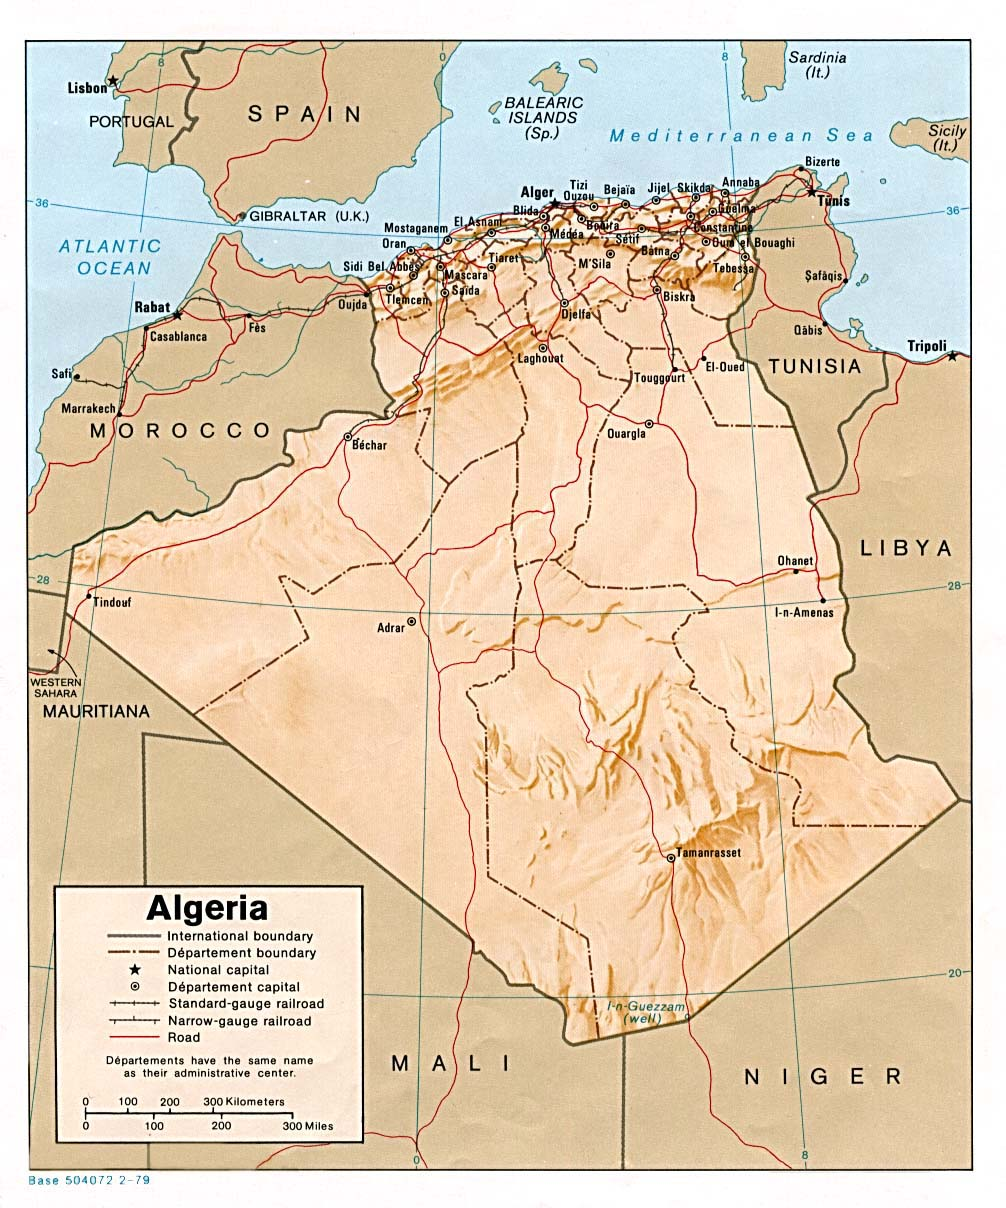 Algeria Shading Relief Map 1979 large map